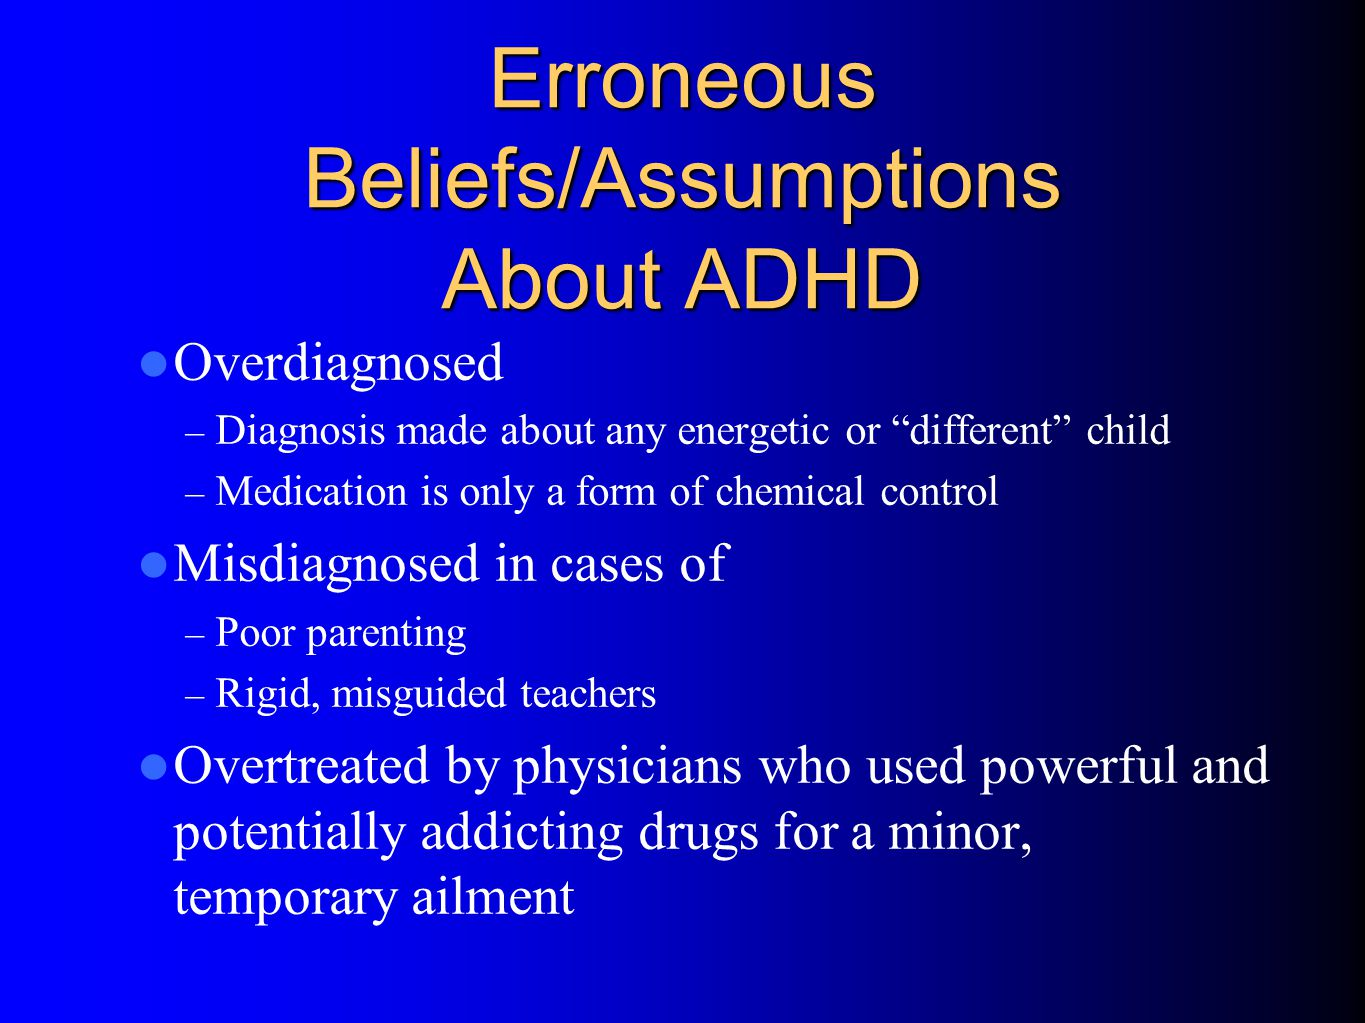 Erroneous Beliefs/Assumptions About ADHD Produced a pattern of treatment in which clinicians did not use medications OR – Used low doses of medications – (Only Monday through Friday) – (Only during school hours) – (Gave drug holidays ) – Stopped medications in adolescence